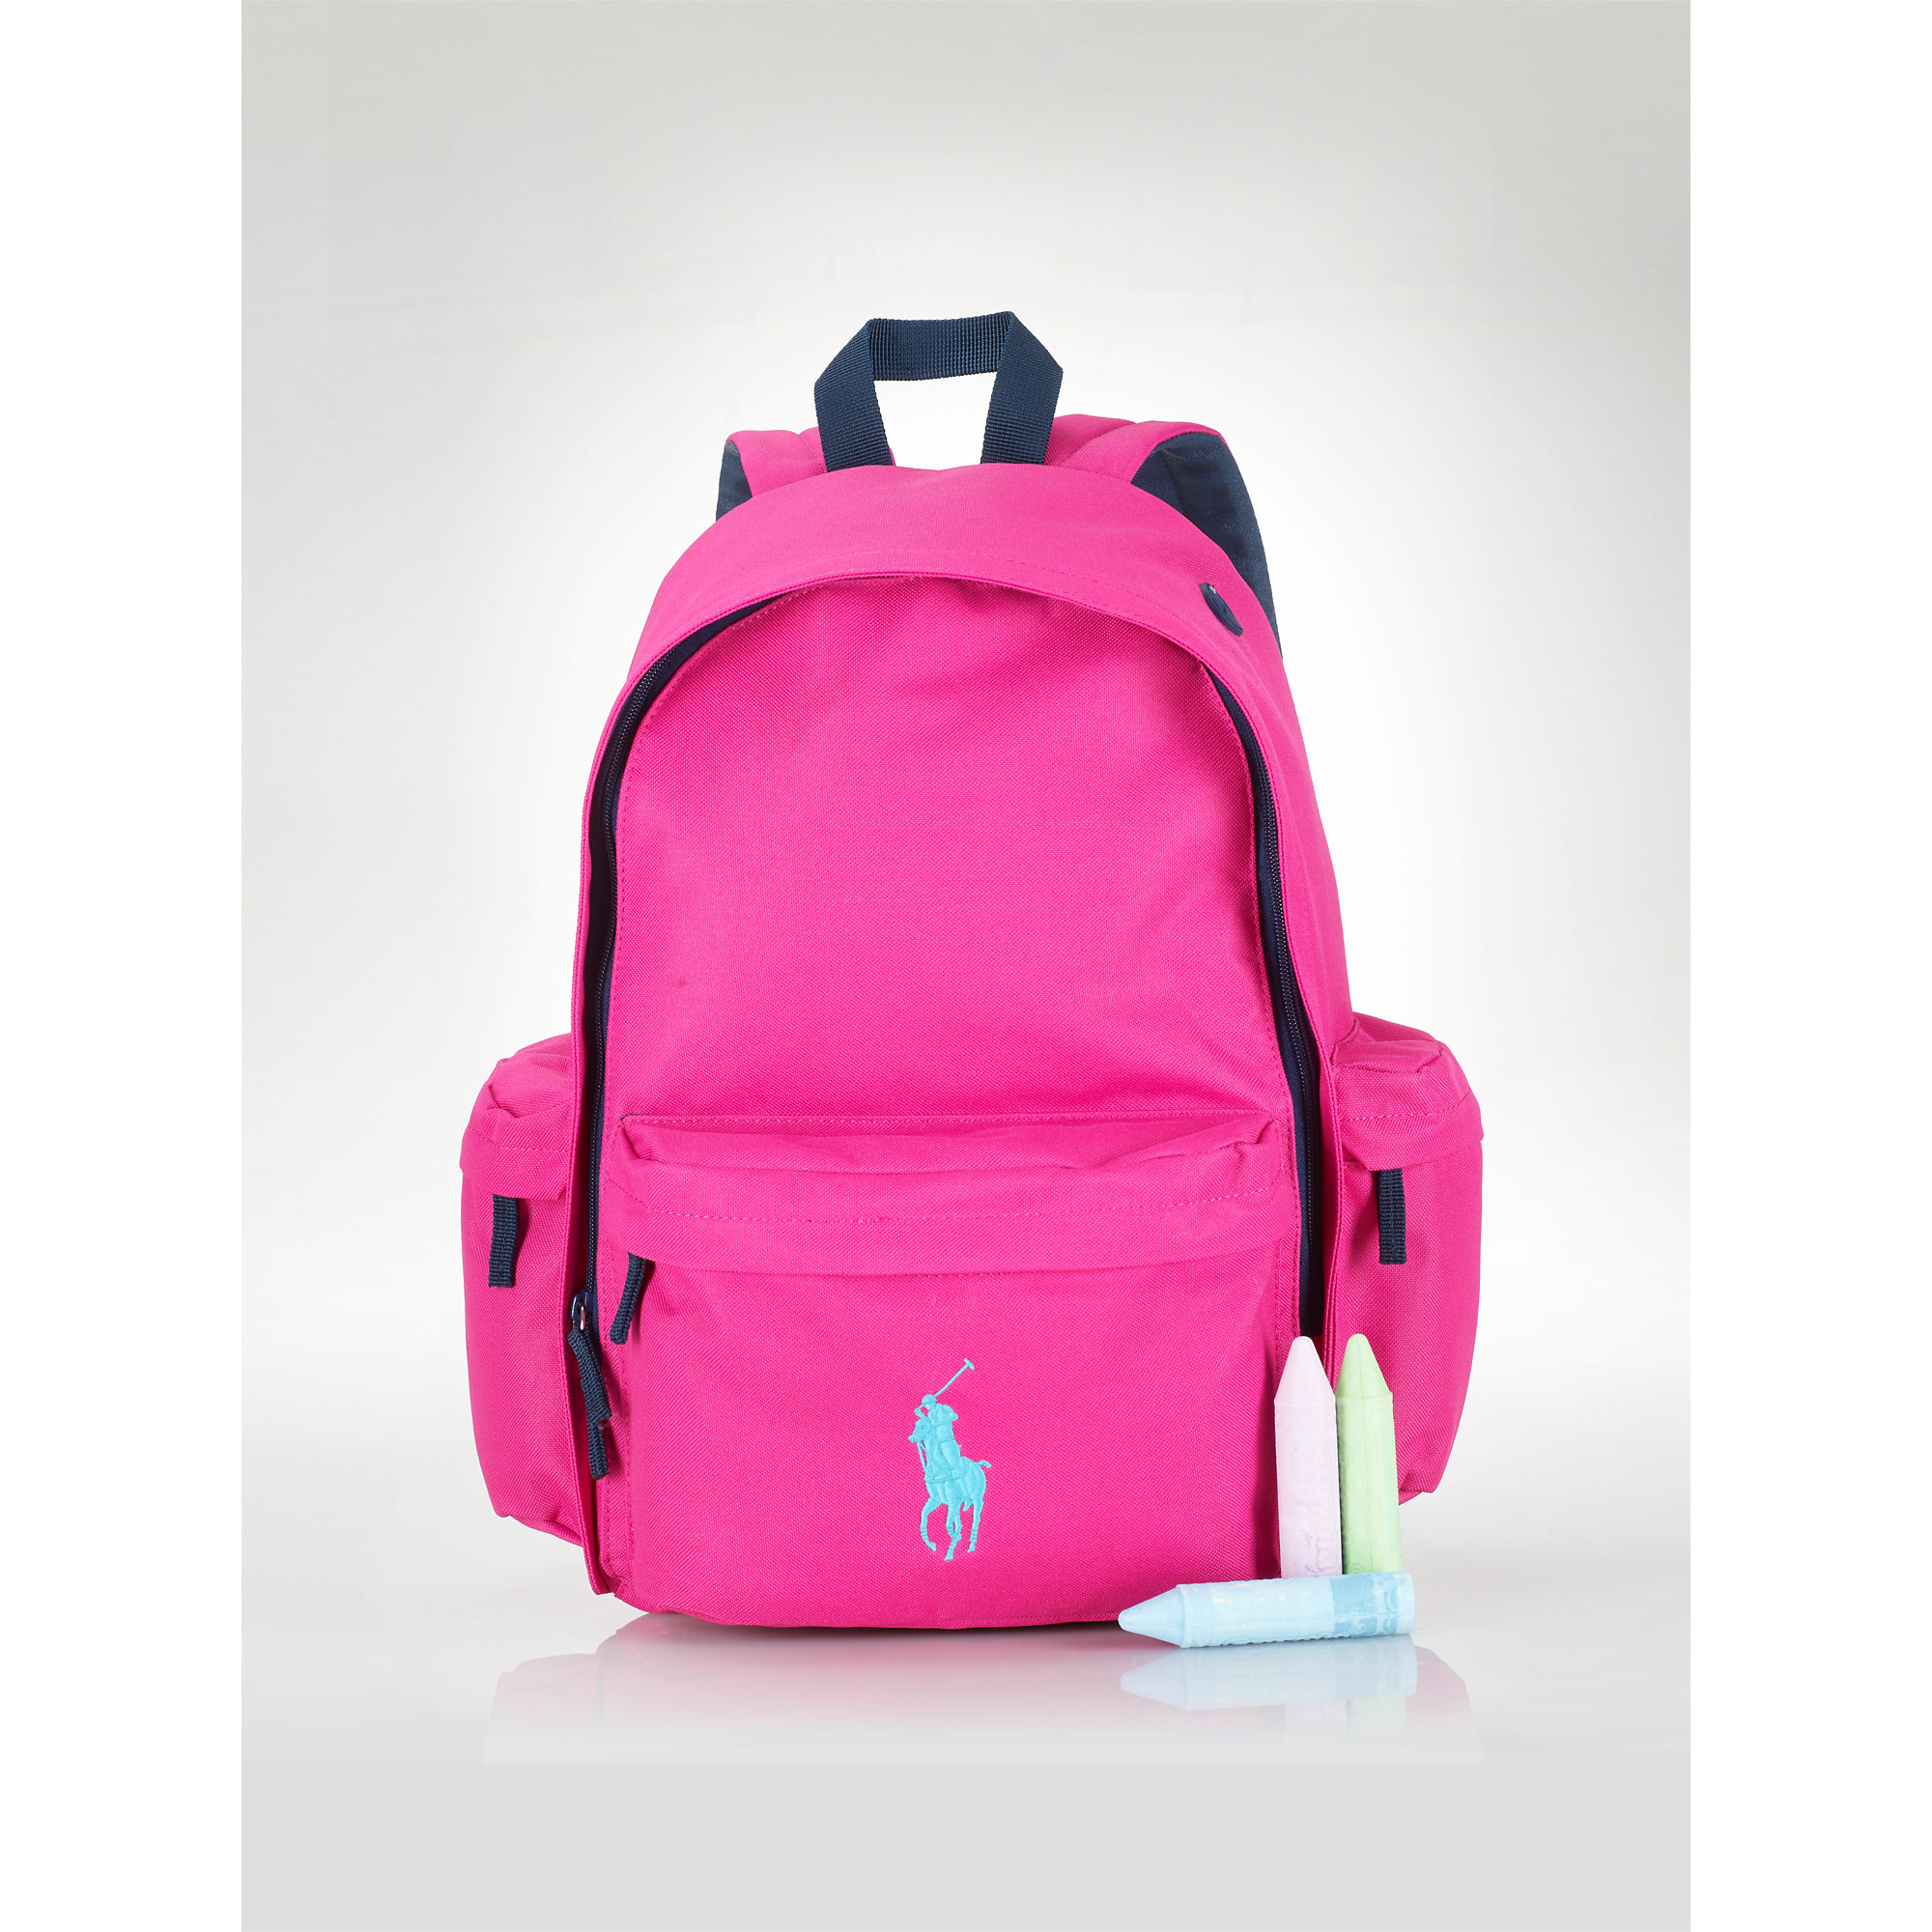 Ralph lauren Large Big Pony Backpack in Pink | Lyst